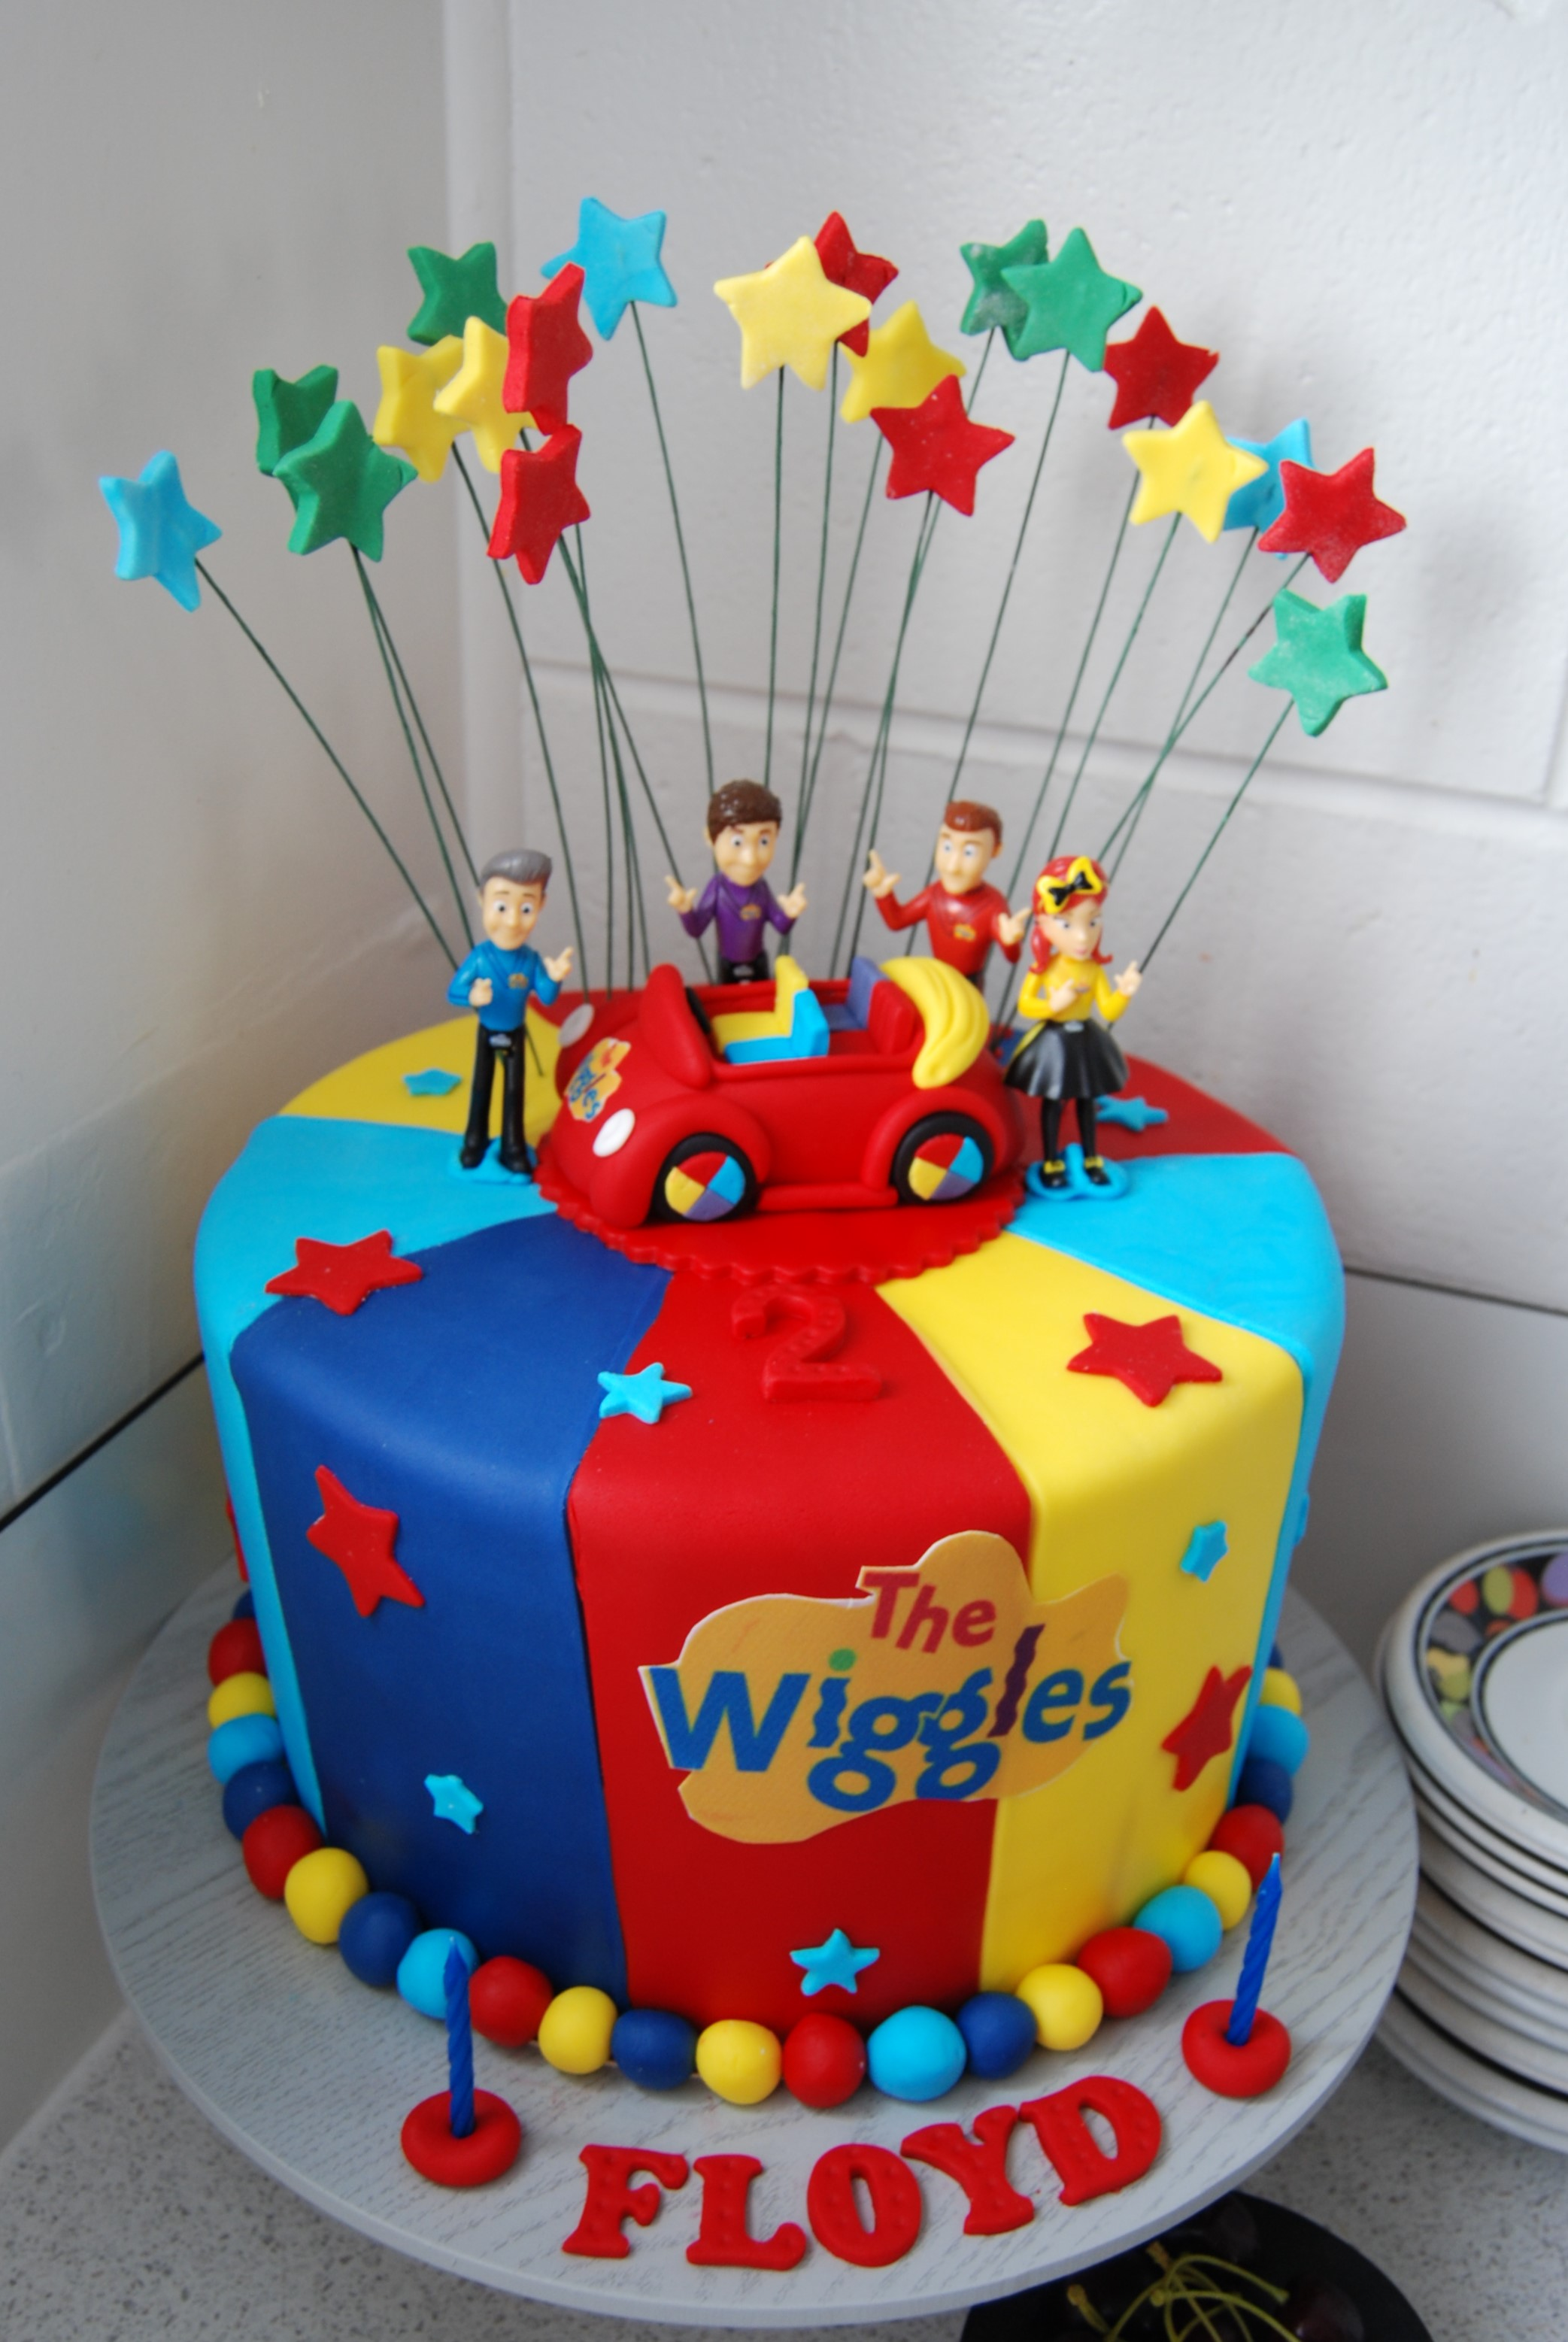 Fabulous Wiggles Cake 350 Temptation Cakes Temptation Cakes Birthday Cards Printable Opercafe Filternl